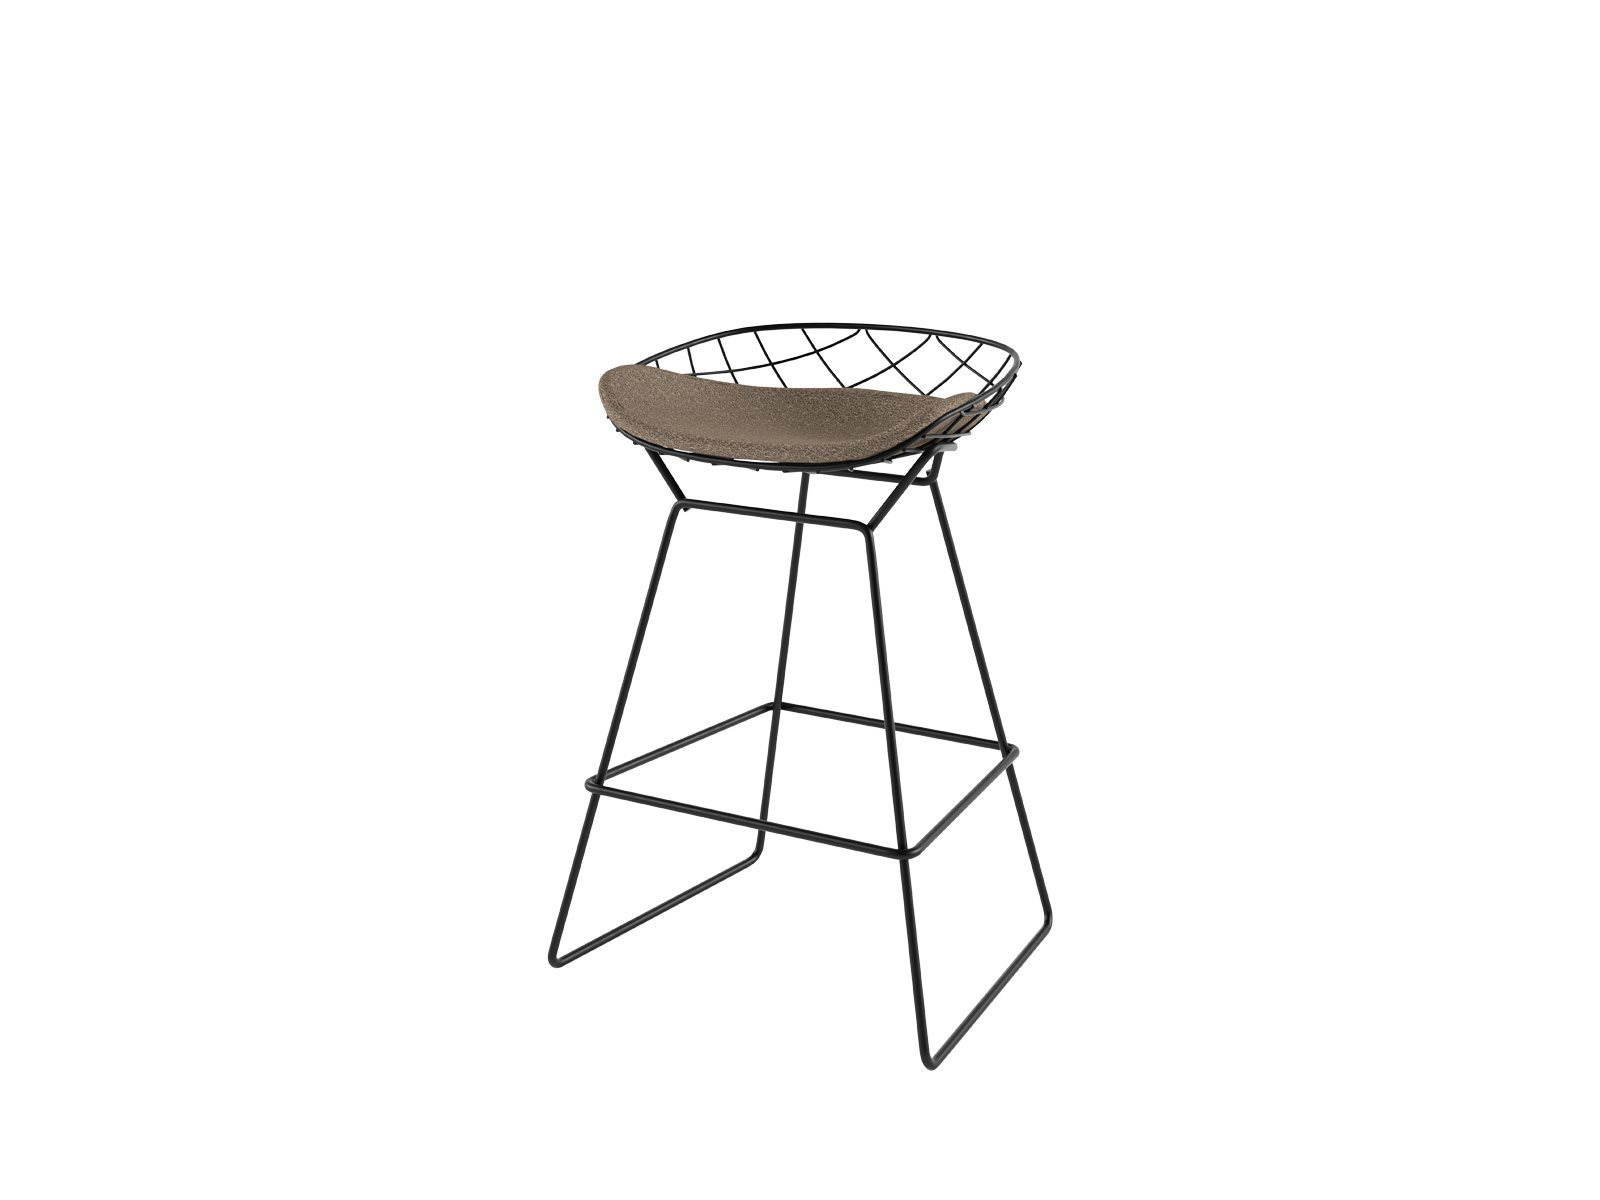 alias_KOBI-MEDIUM-STOOL-N02_gallery01